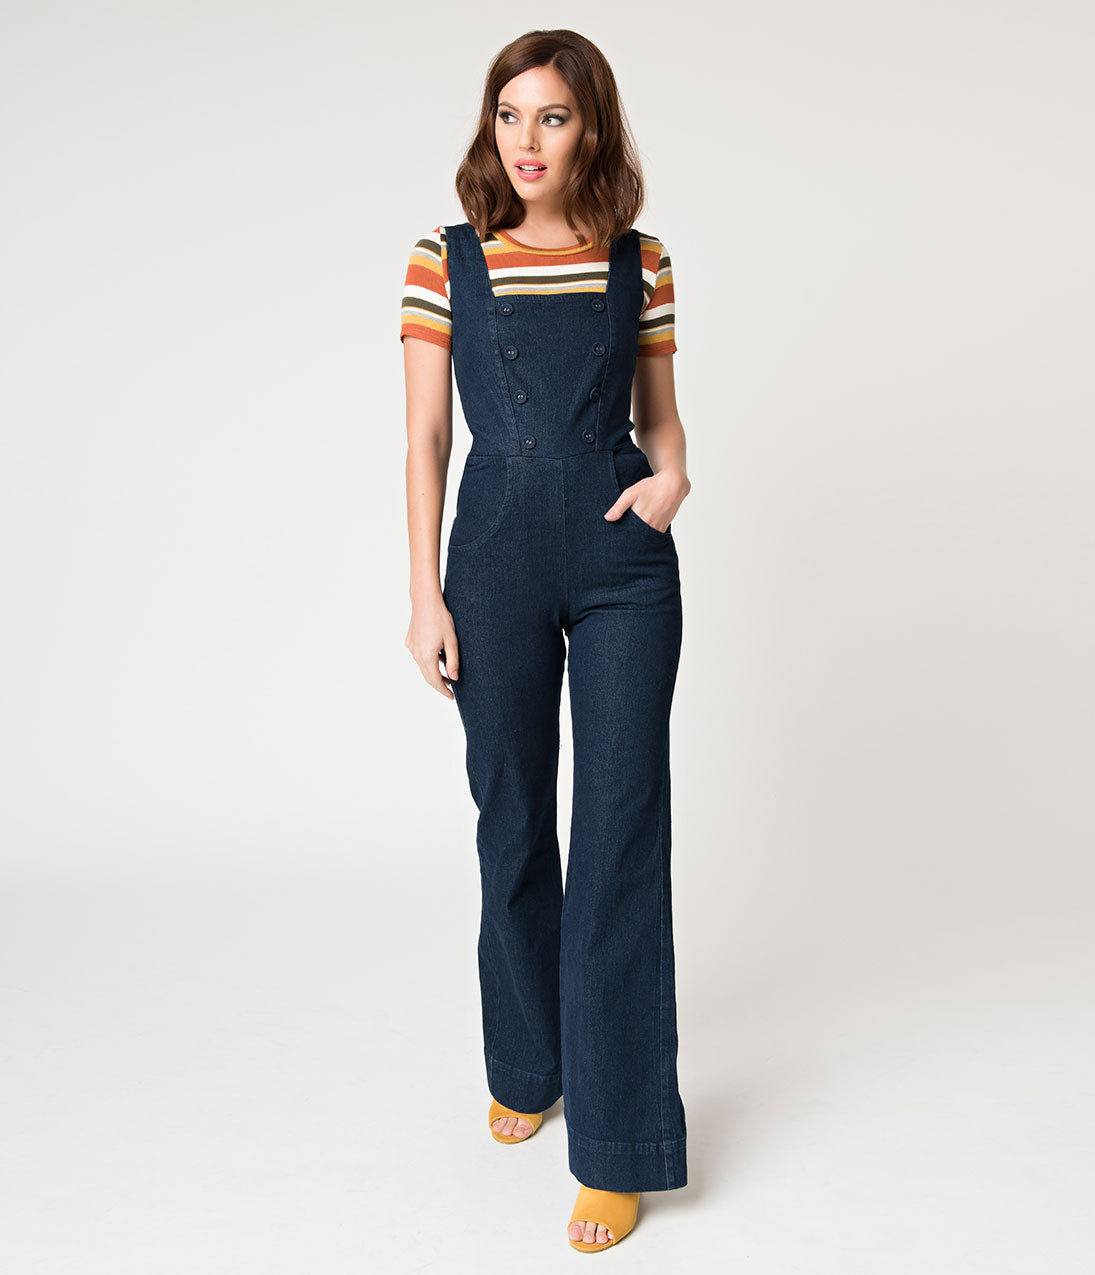 Vintage Overalls 1910s -1950s Pictures and History Voodoo Vixen Dark Blue Denim Everly Overall Jumpsuit $86.00 AT vintagedancer.com